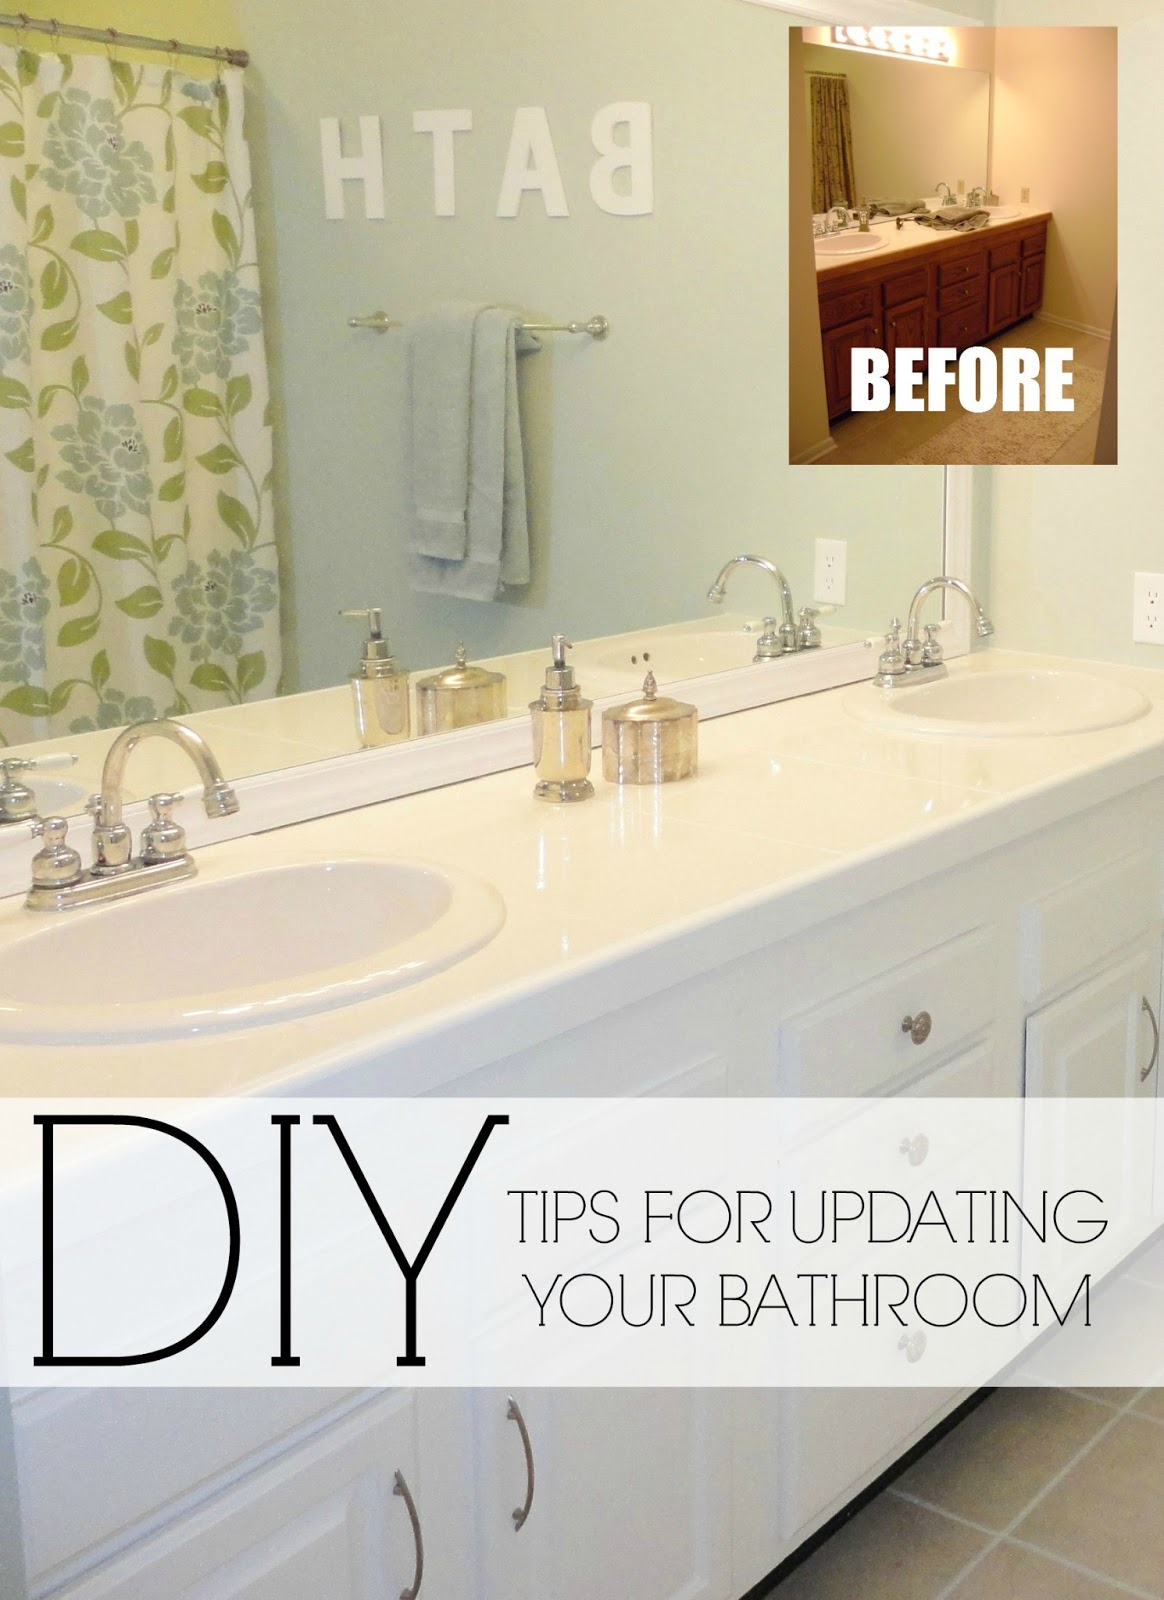 Bathroom Diy Ideas Prepossessing Livelovediy Easy Diy Ideas For Updating Your Bathroom Decorating Design